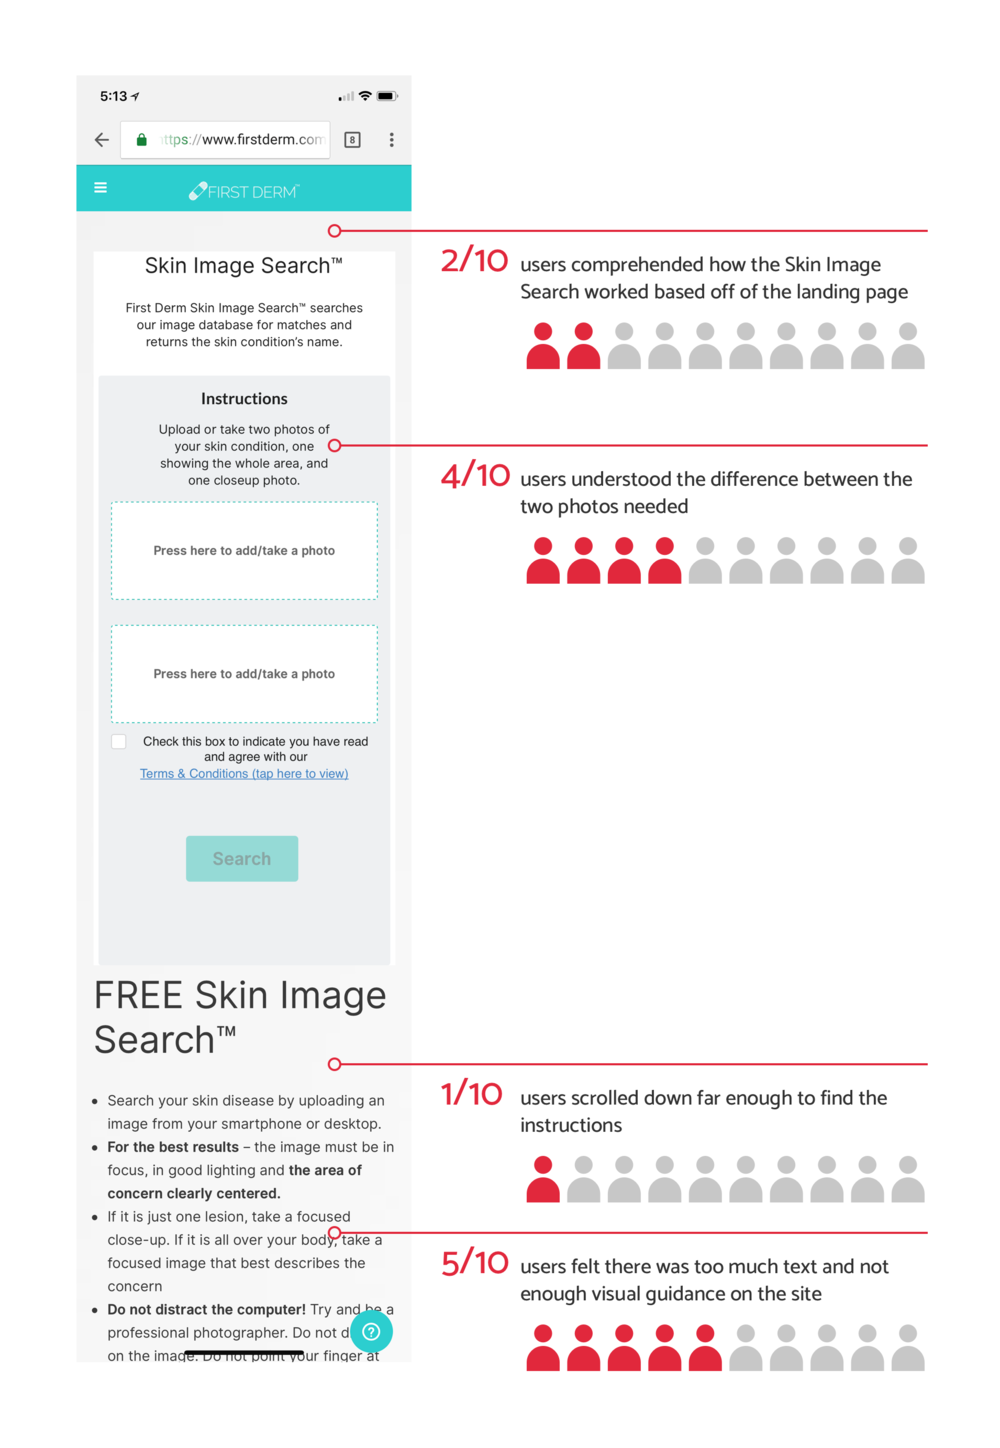 Results from our usability test on the original Skin Image Search site